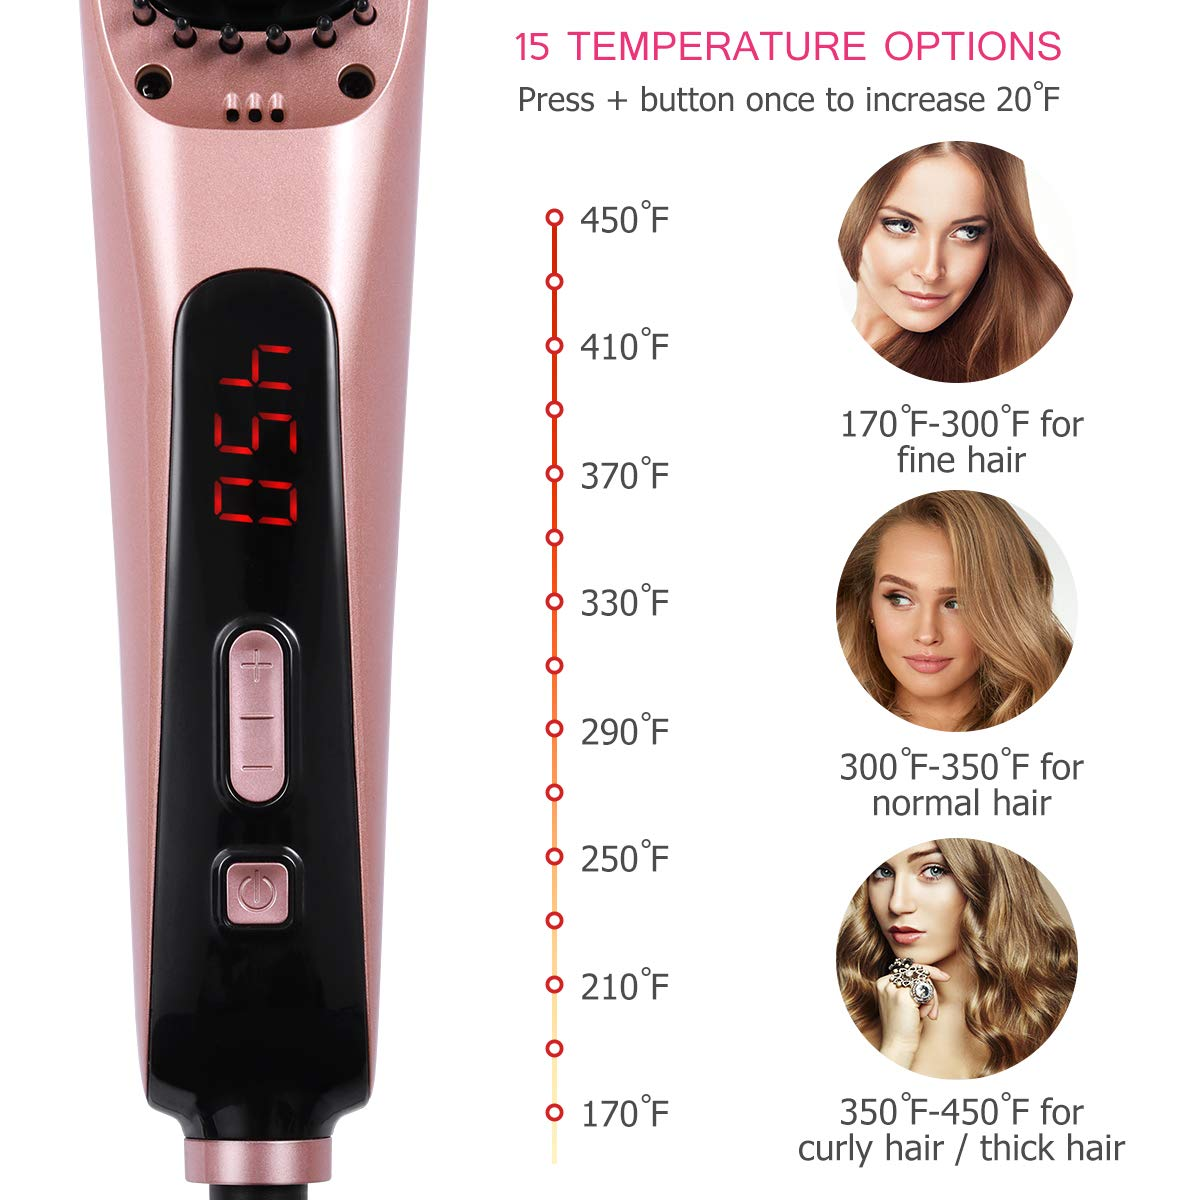 Hair Straightening Brush, Ceramic Ionic Hair Straightener Brush Hot Comb Hair Straightener